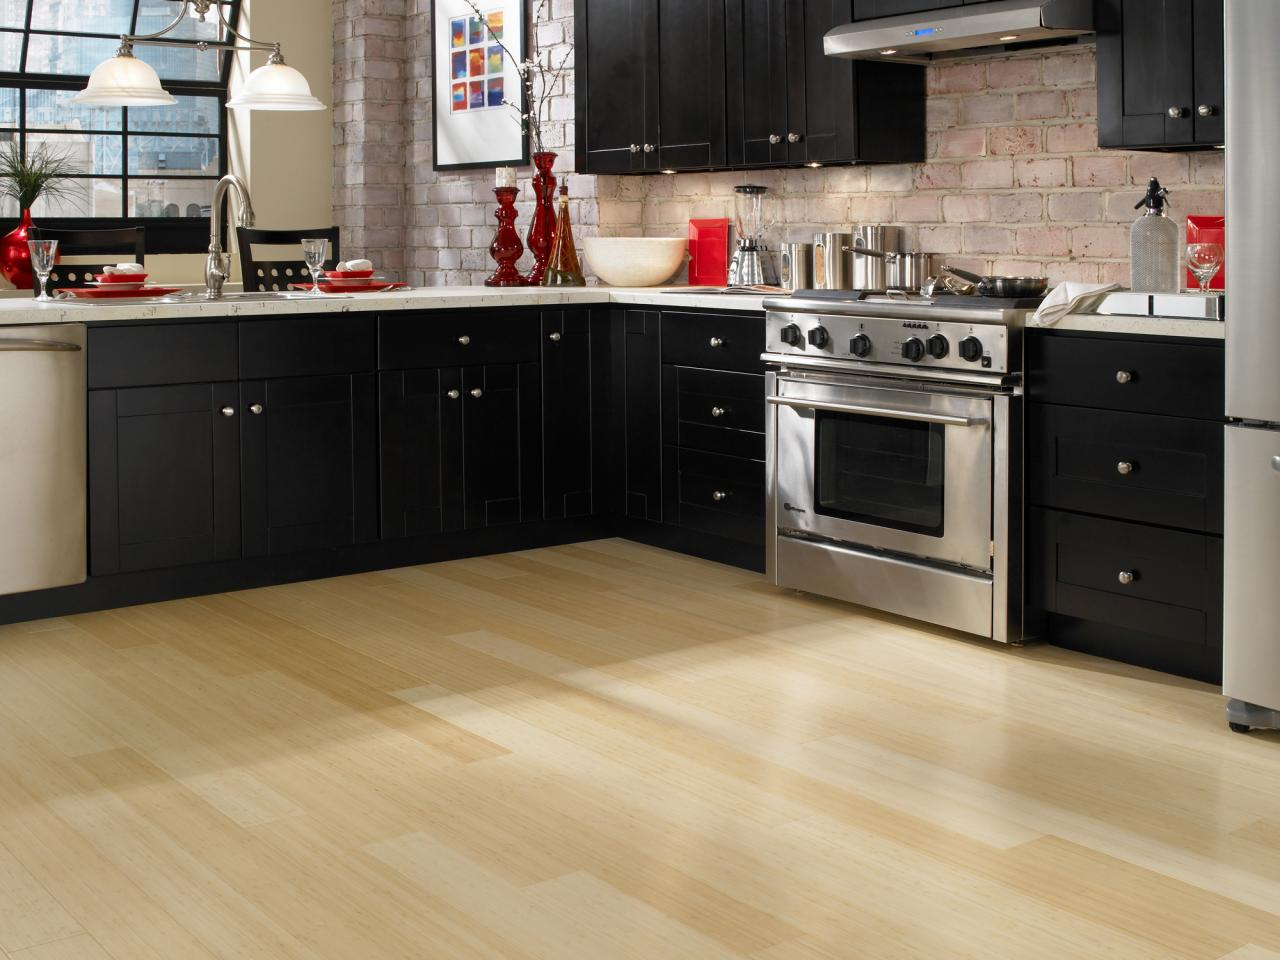 Guide To Choosing Laminate Flooring Color For Your Kitchen Hardwood Giant